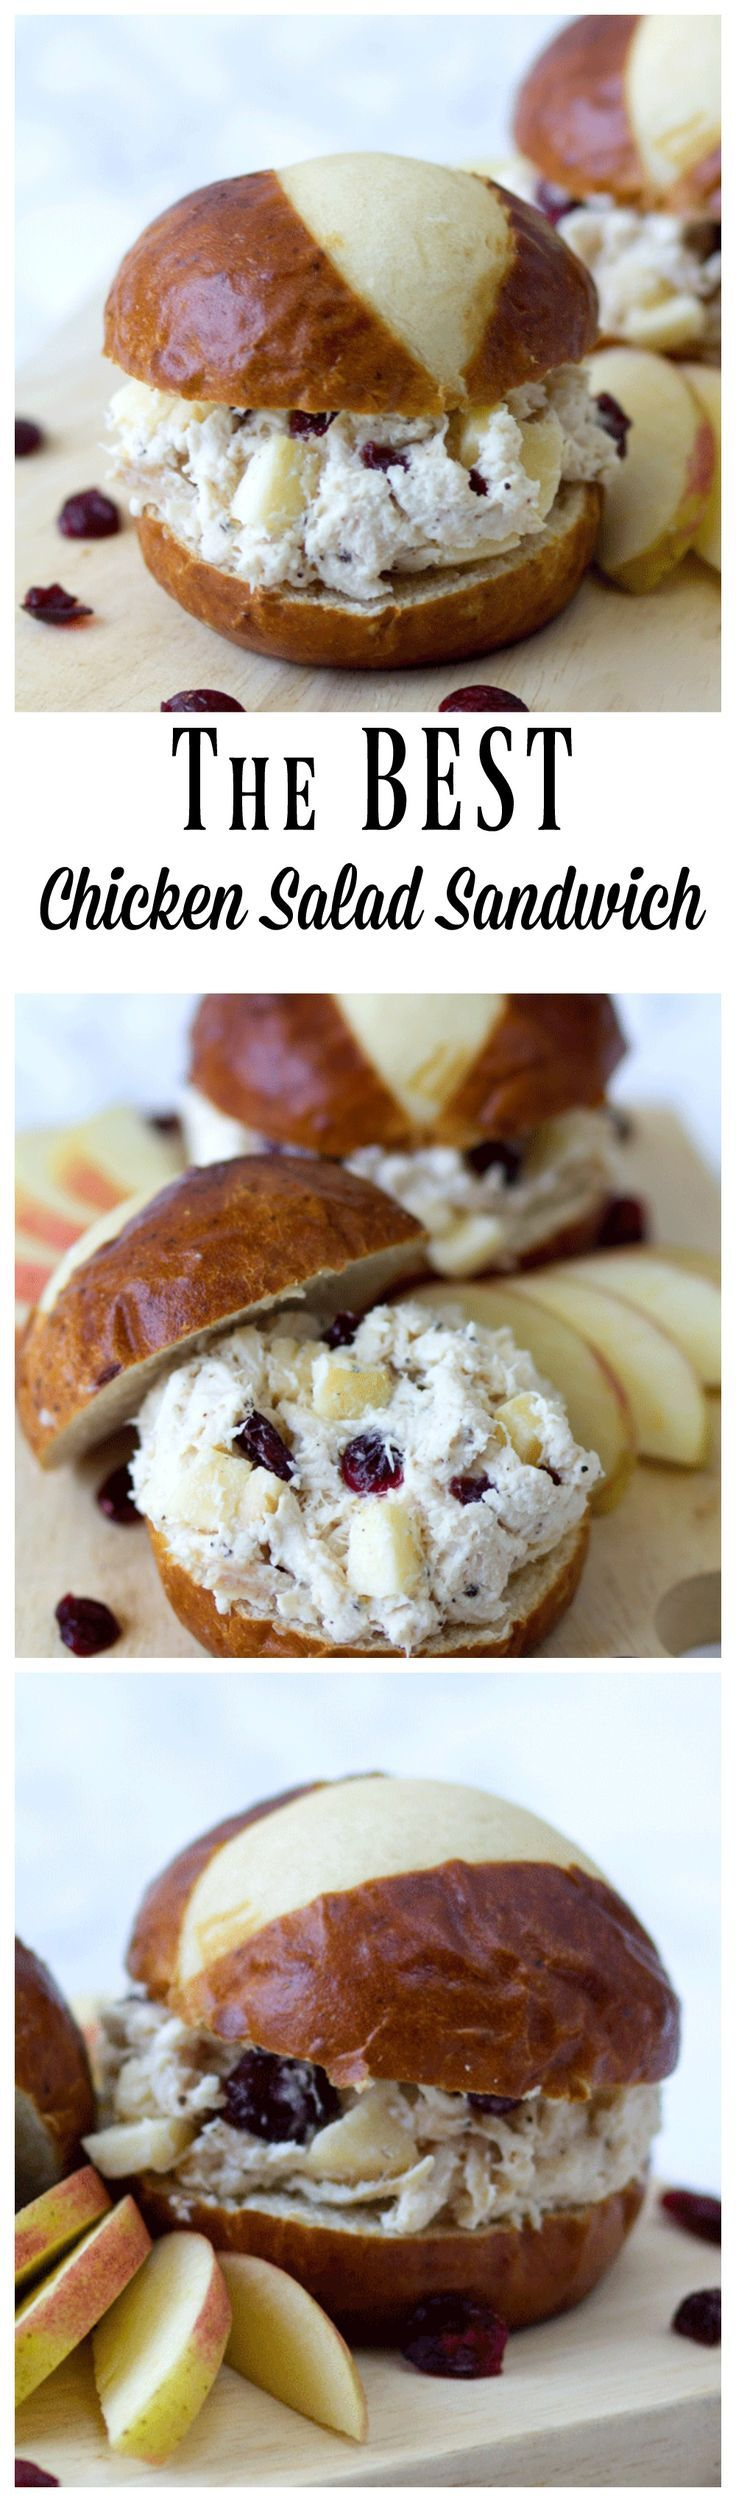 The BEST Chicken Salad Sandwich is a great combination of chopped chicken, crunchy apples, creamy mayo and sweet raisins. It is now my go to Chicken Salad!